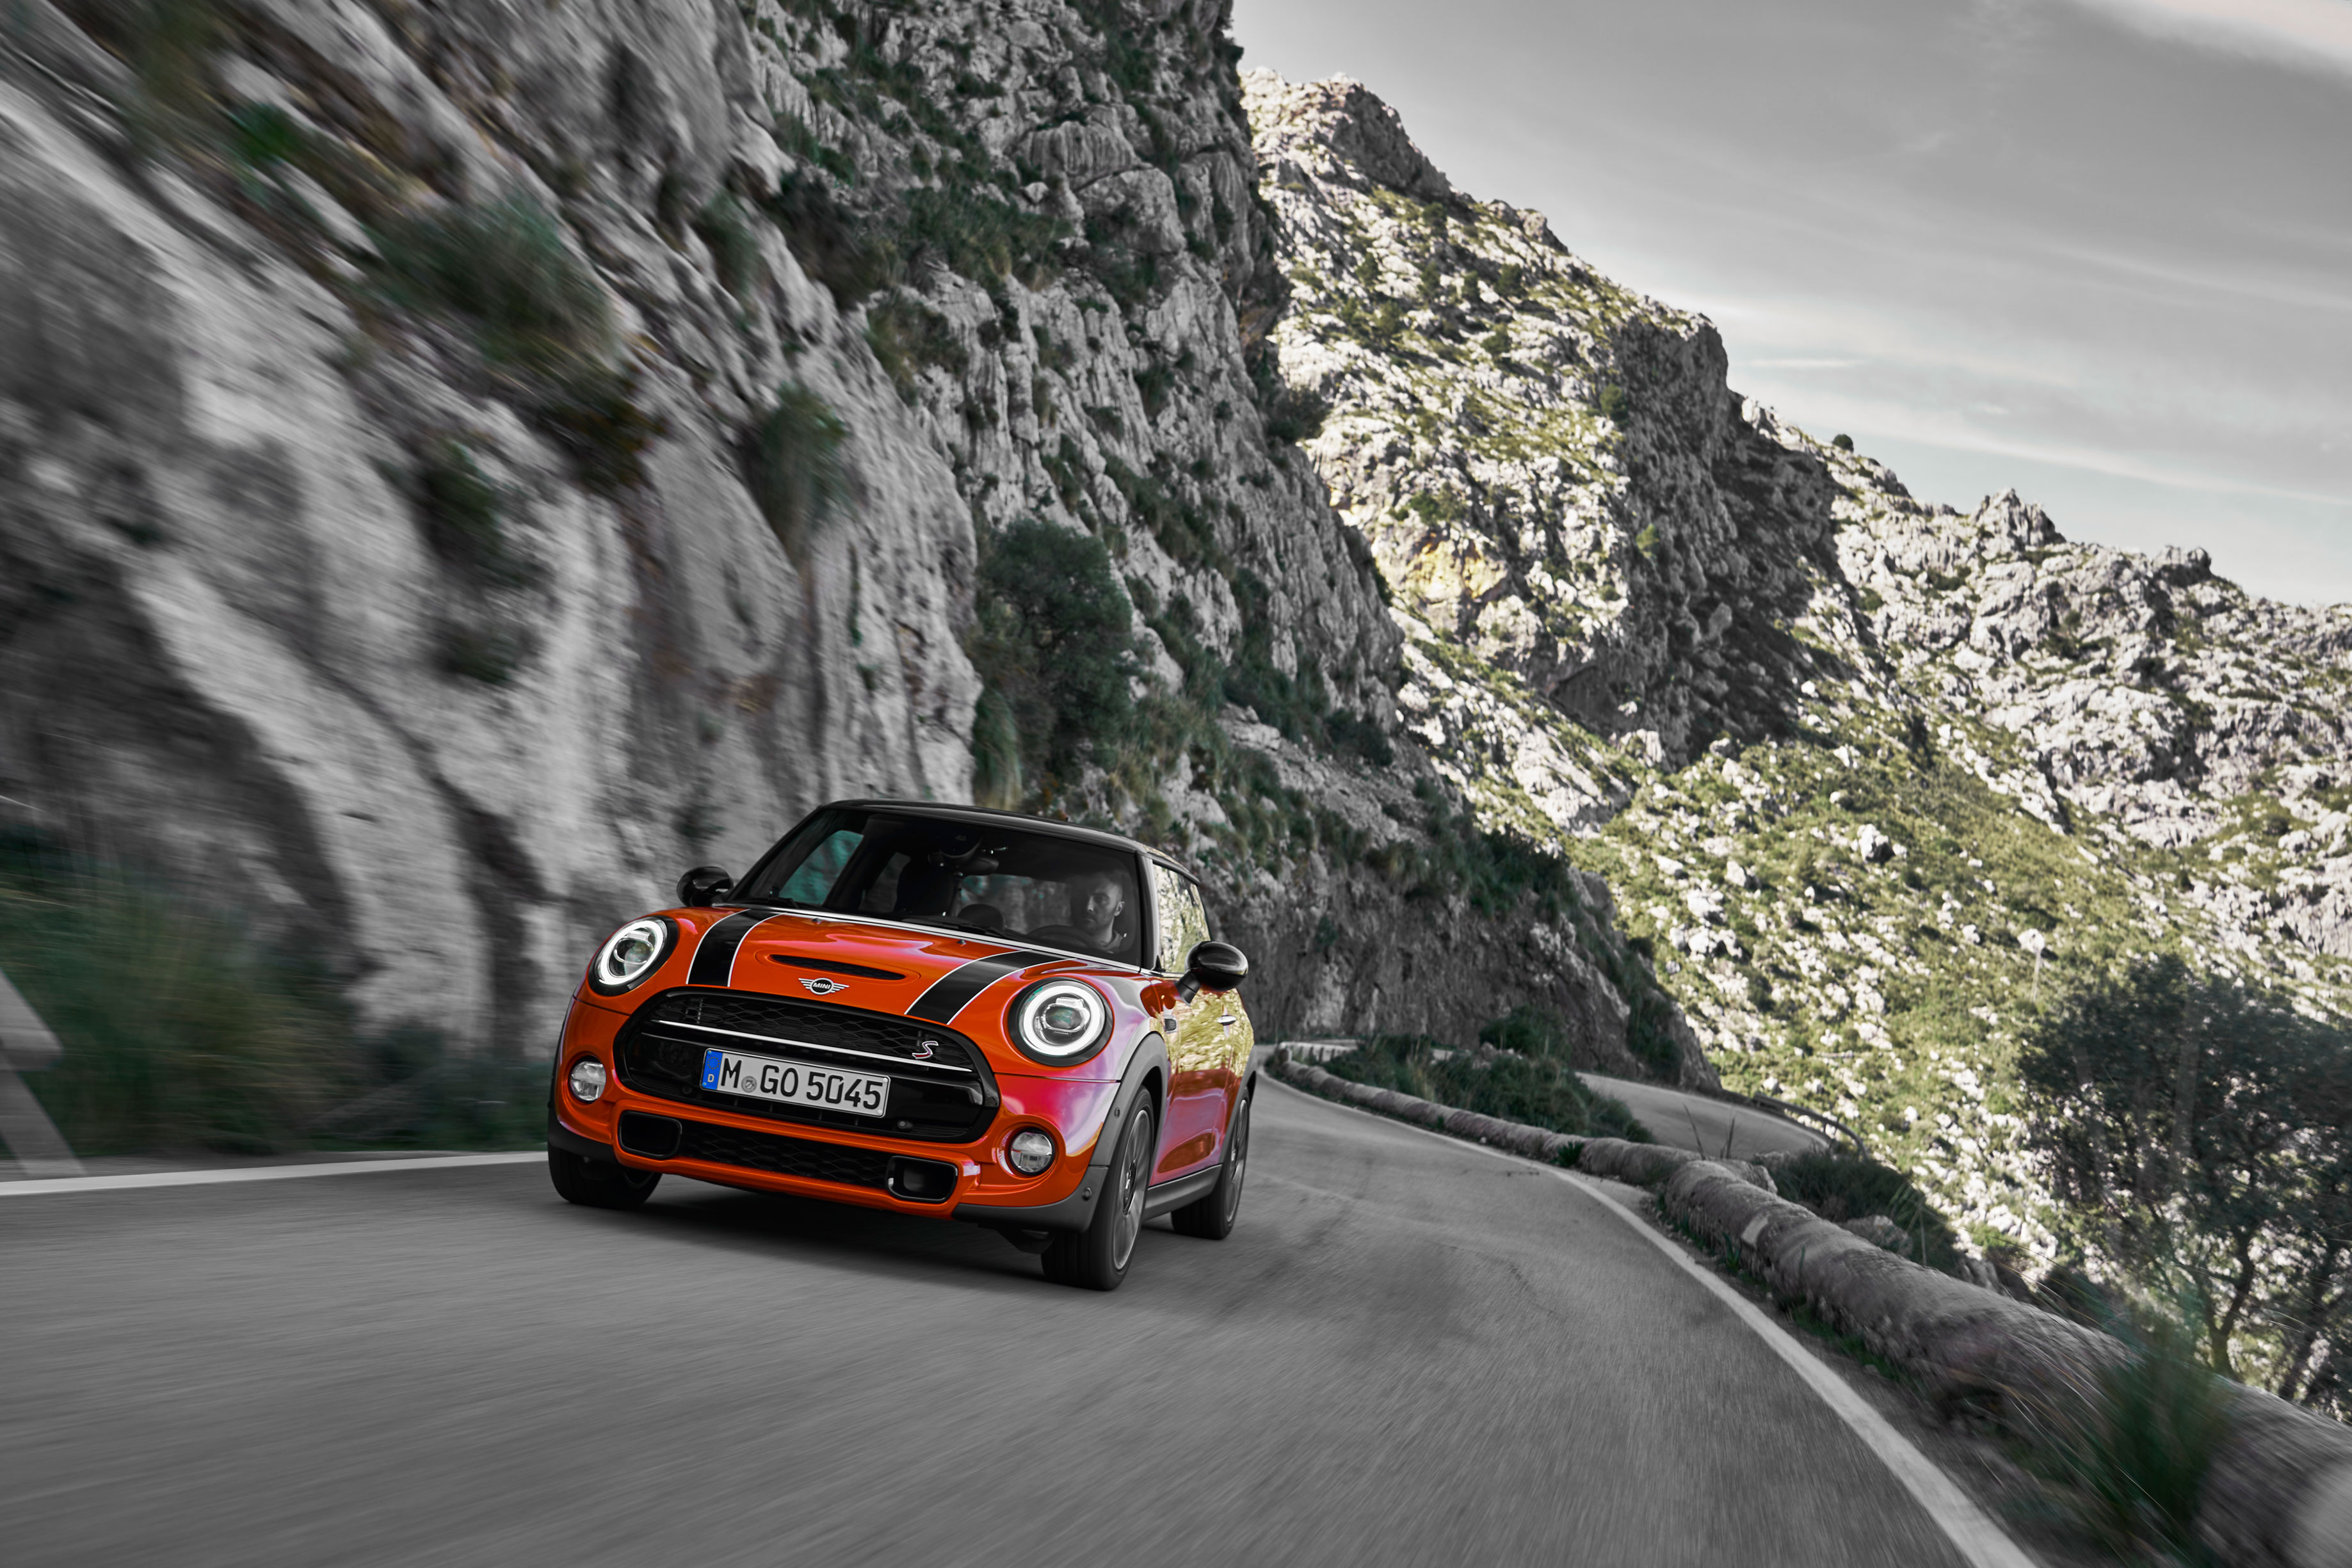 New Mini Cooper S review 2018 — has a mid-life update improved the